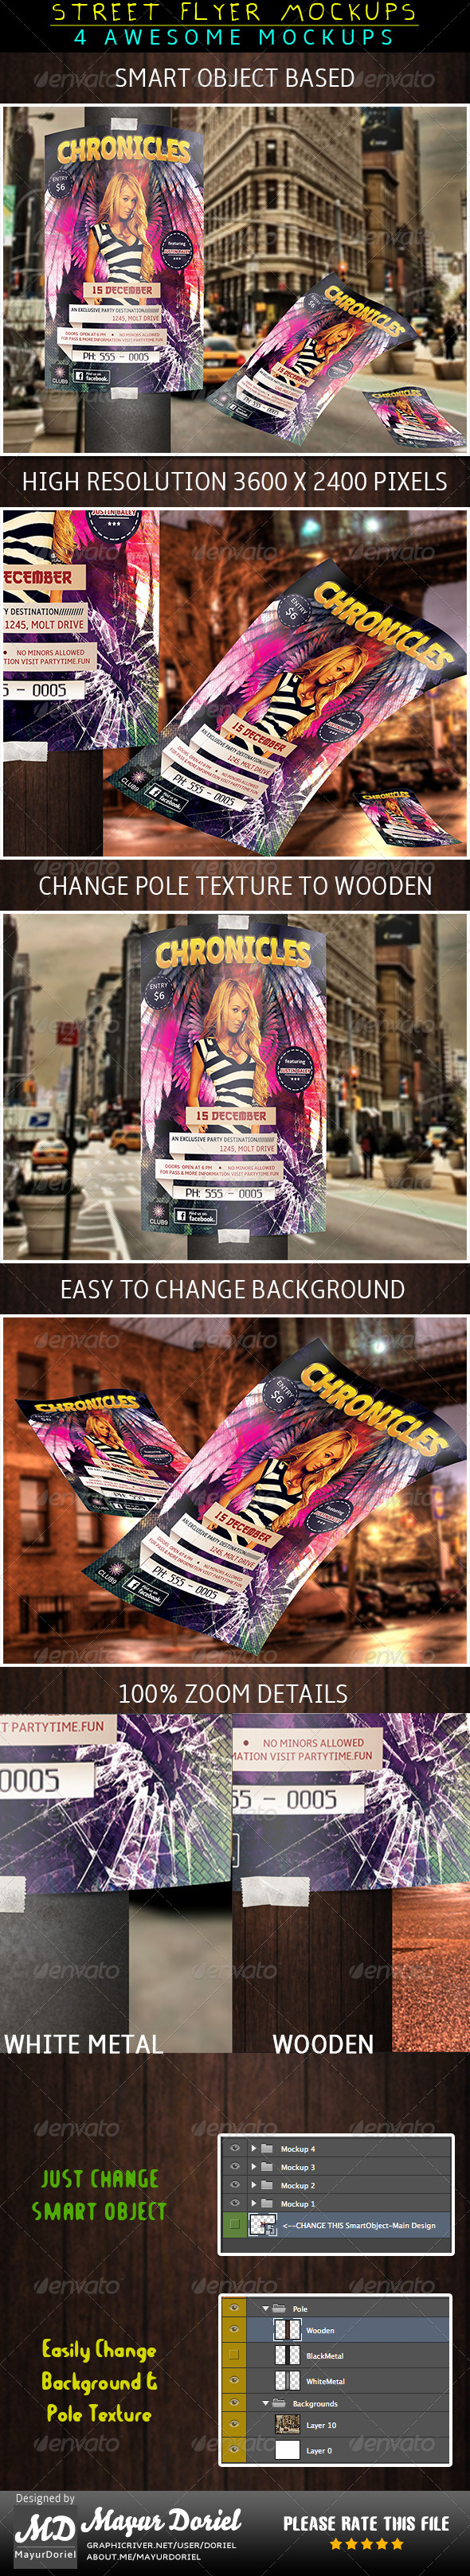 GraphicRiver Street Flyer Mockup 4340066